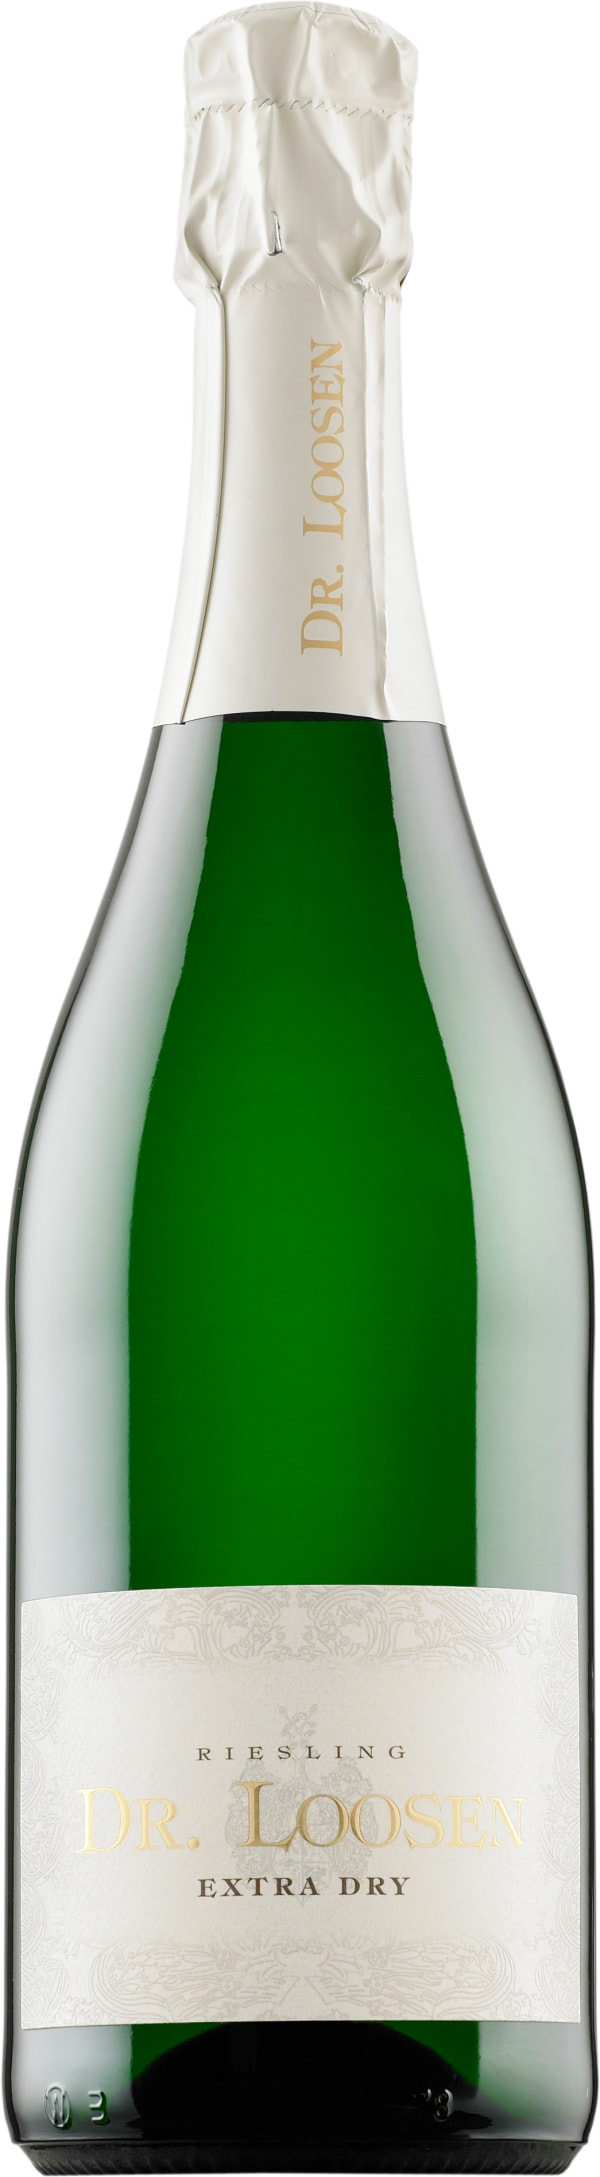 Dr. Loosen Riesling Extra Dry